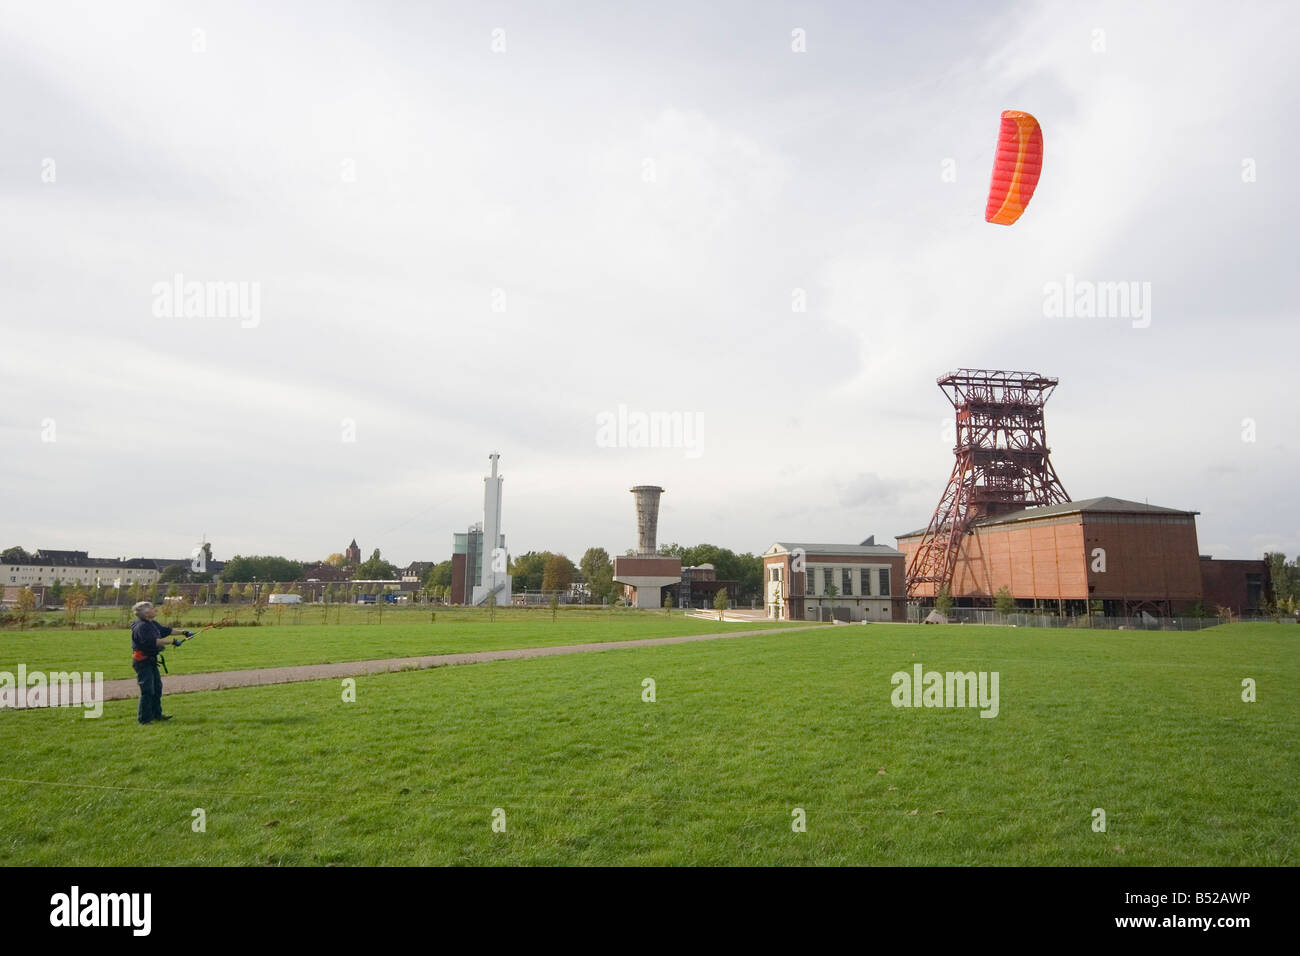 man with a power kite - action in an old industrial area with a shaft tower - Stock Image